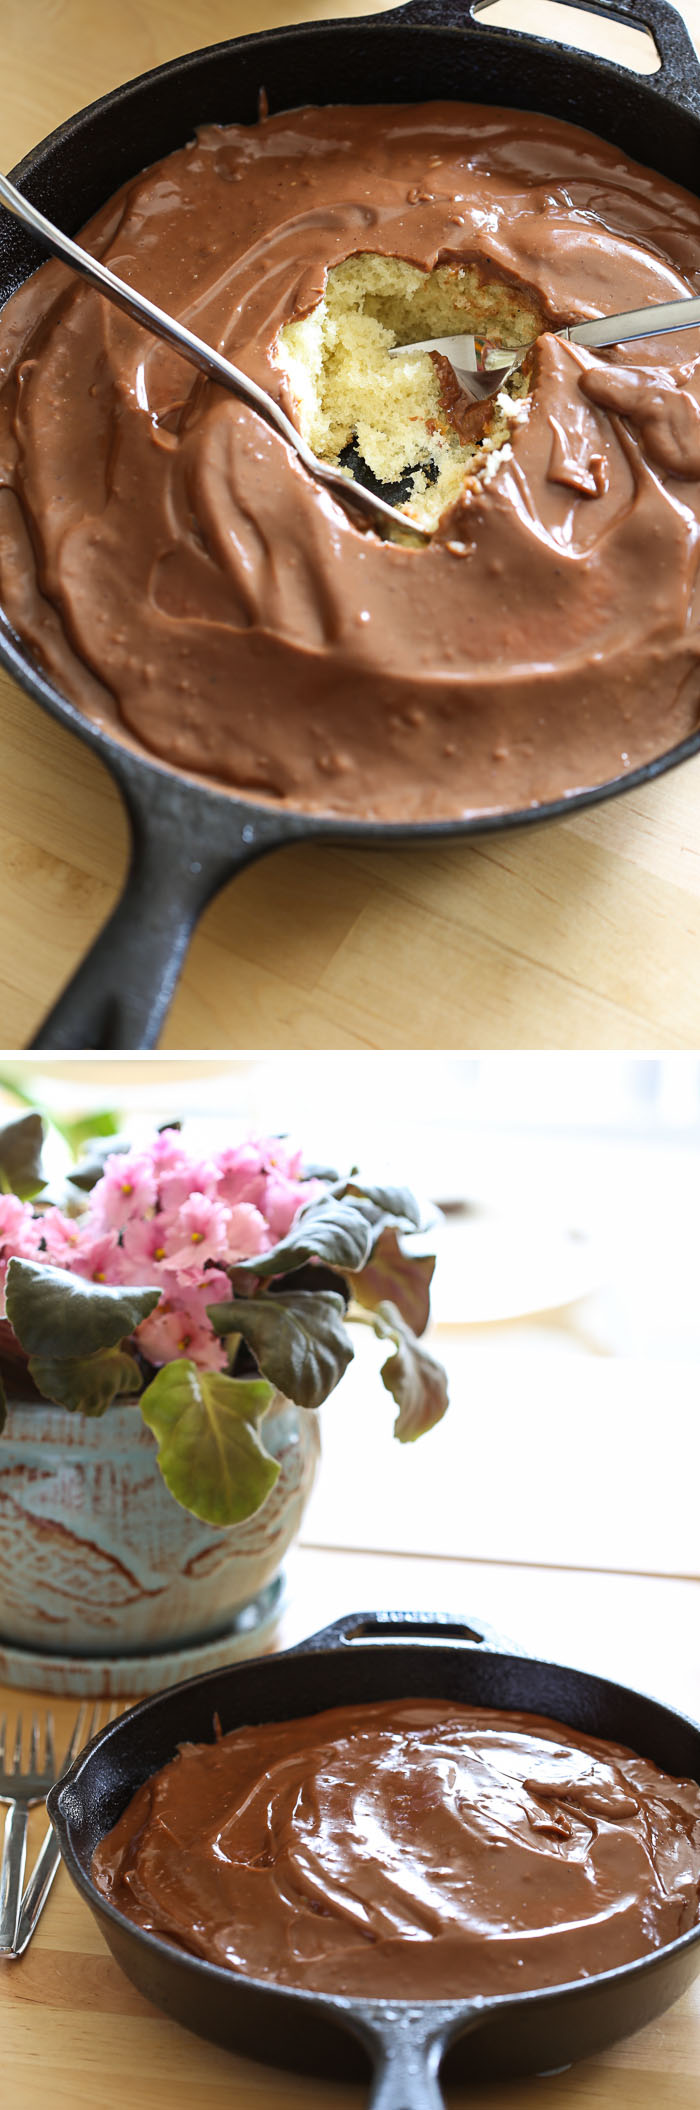 Abuelita Chocolate Pudding Cake